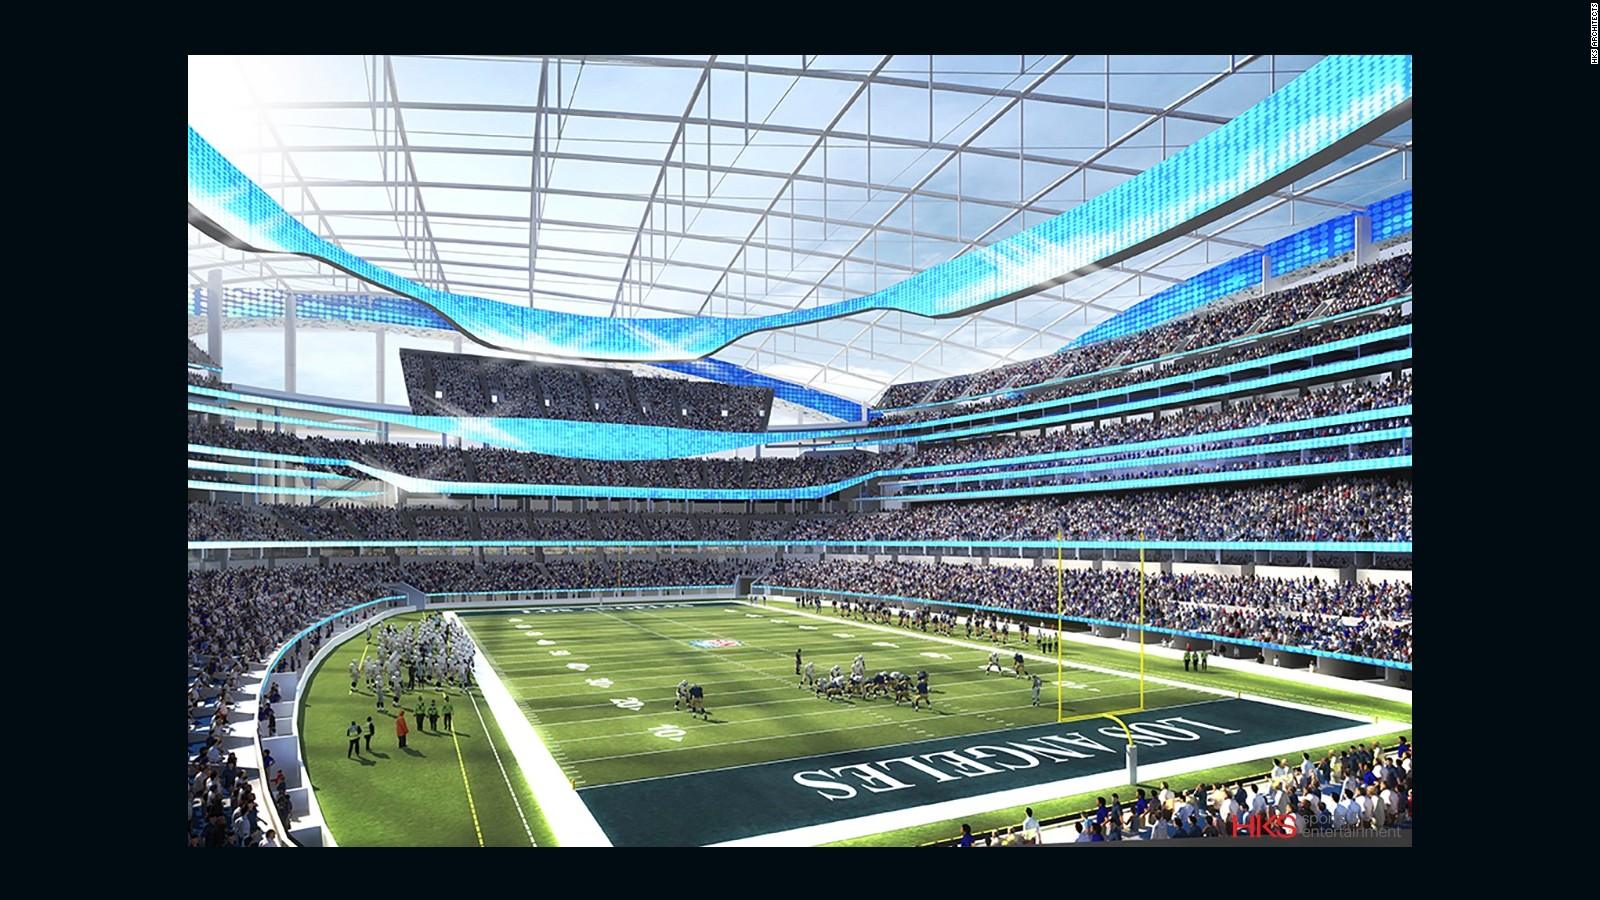 New La Rams Stadium In Inglewood To Be Worlds Most Expensive Cnn Nfl Football Field Diagram Style